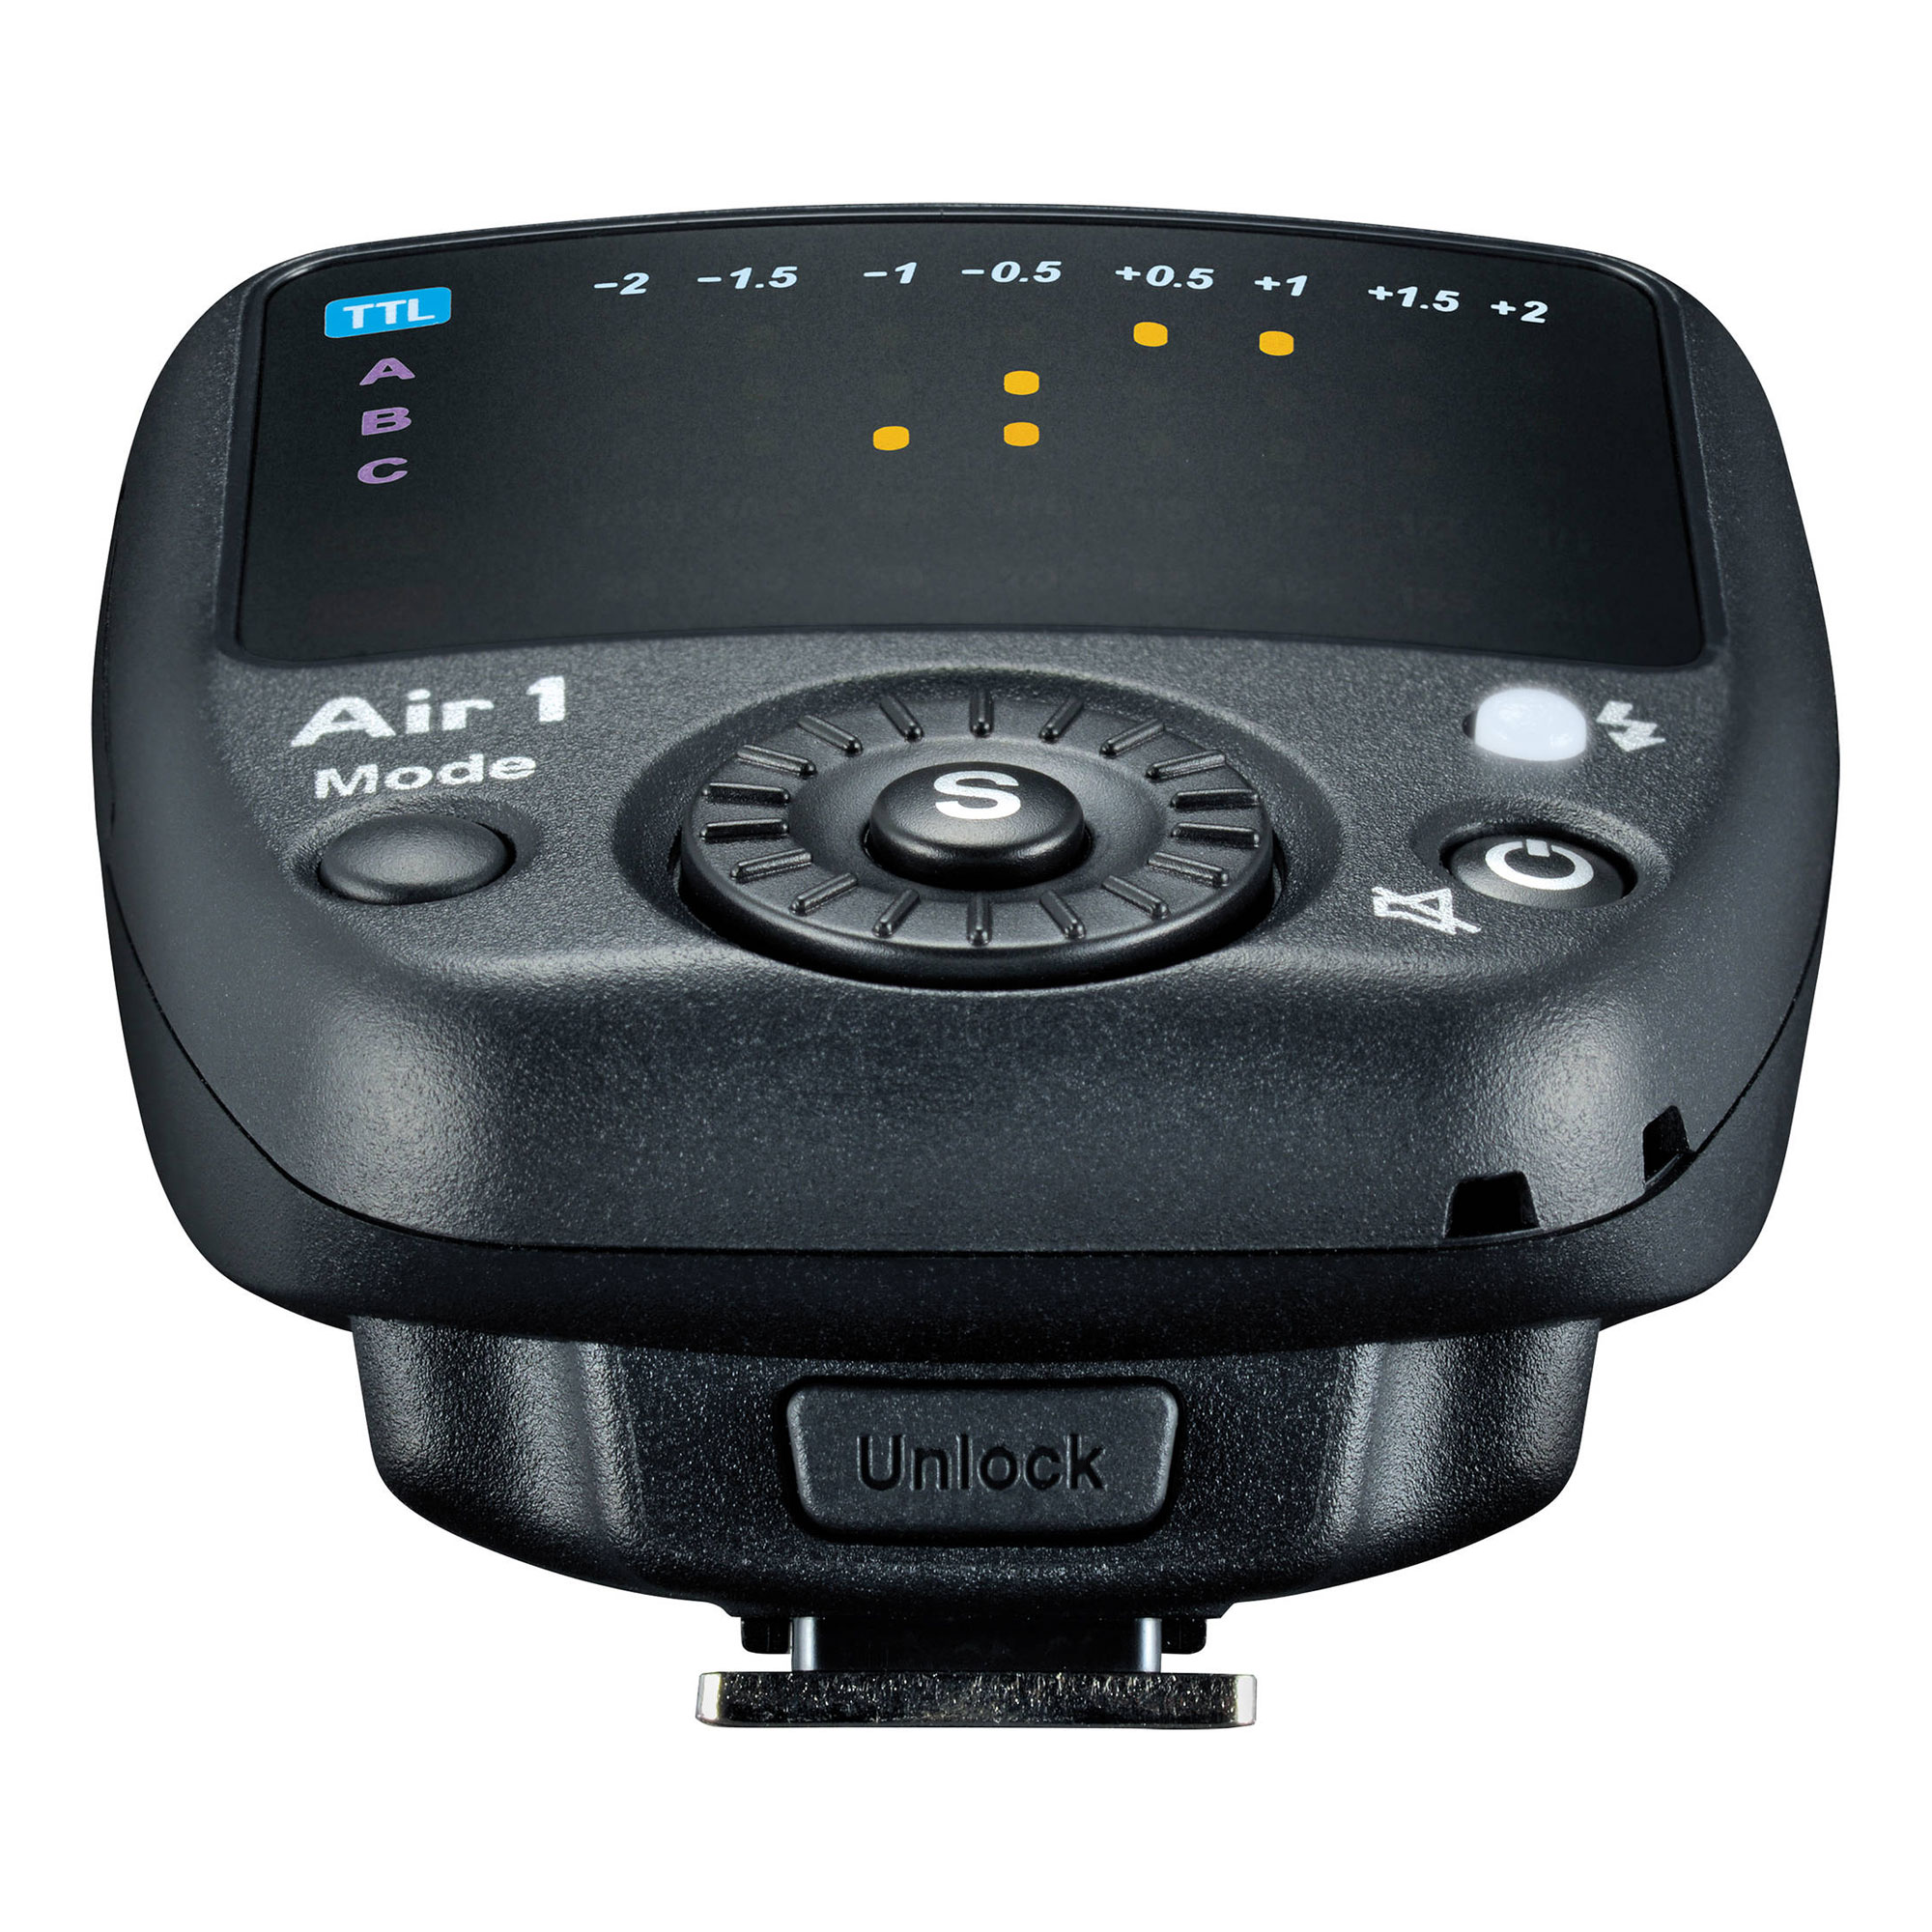 Air 1 Commander for Sony Cameras with Multi Interface Shoe